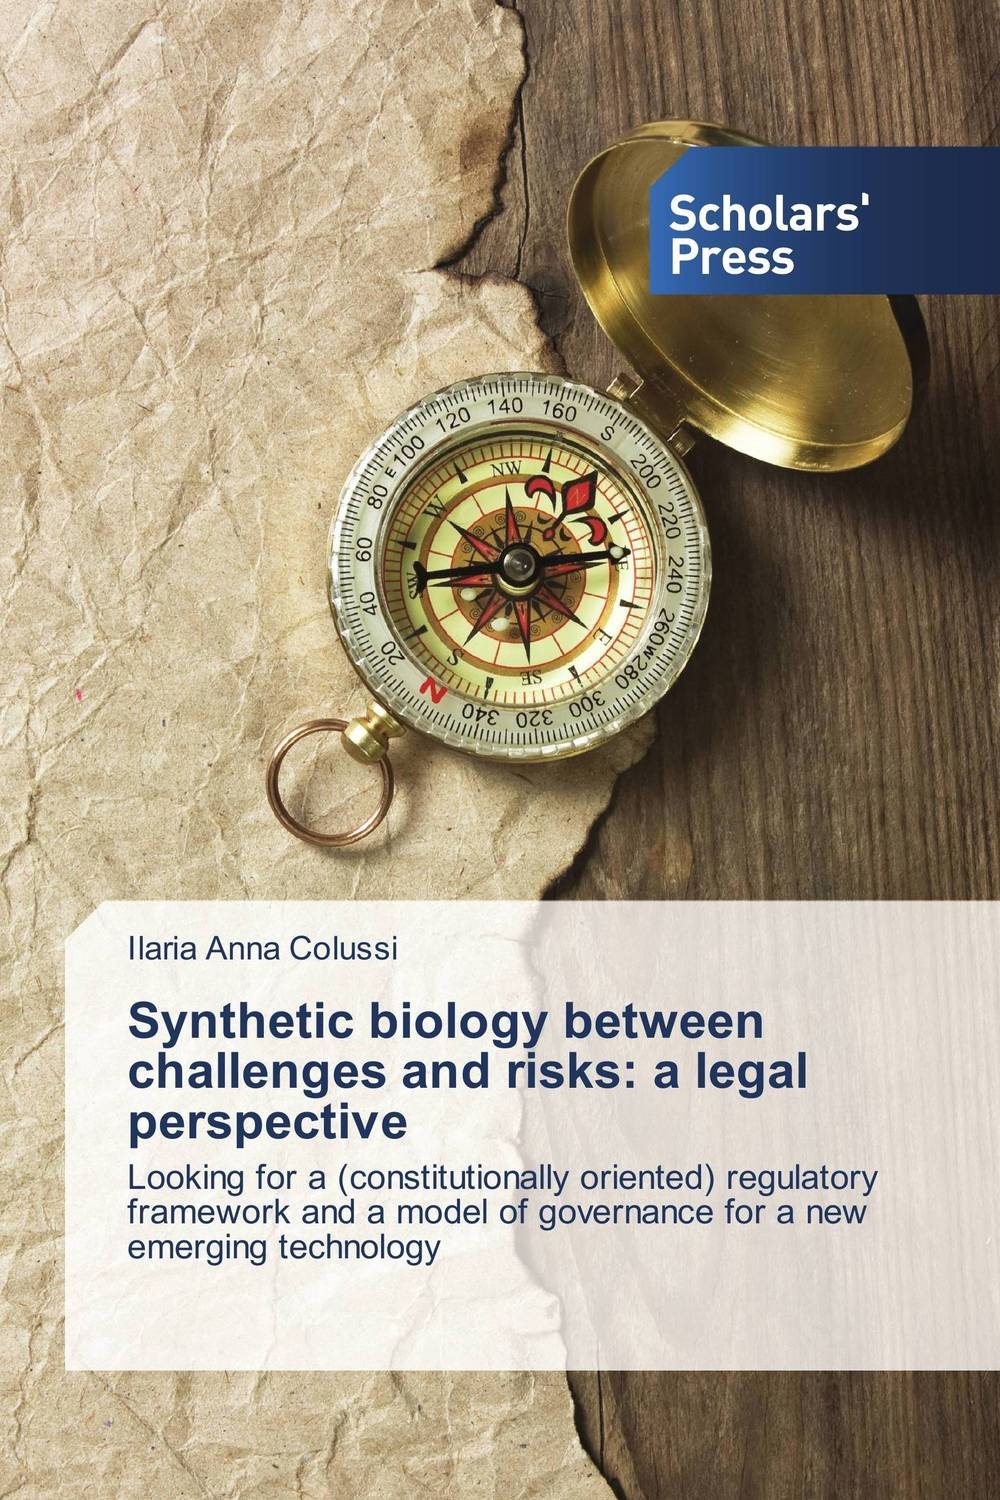 Synthetic biology between challenges and risks: a legal perspective the paradigms of synthetic biology